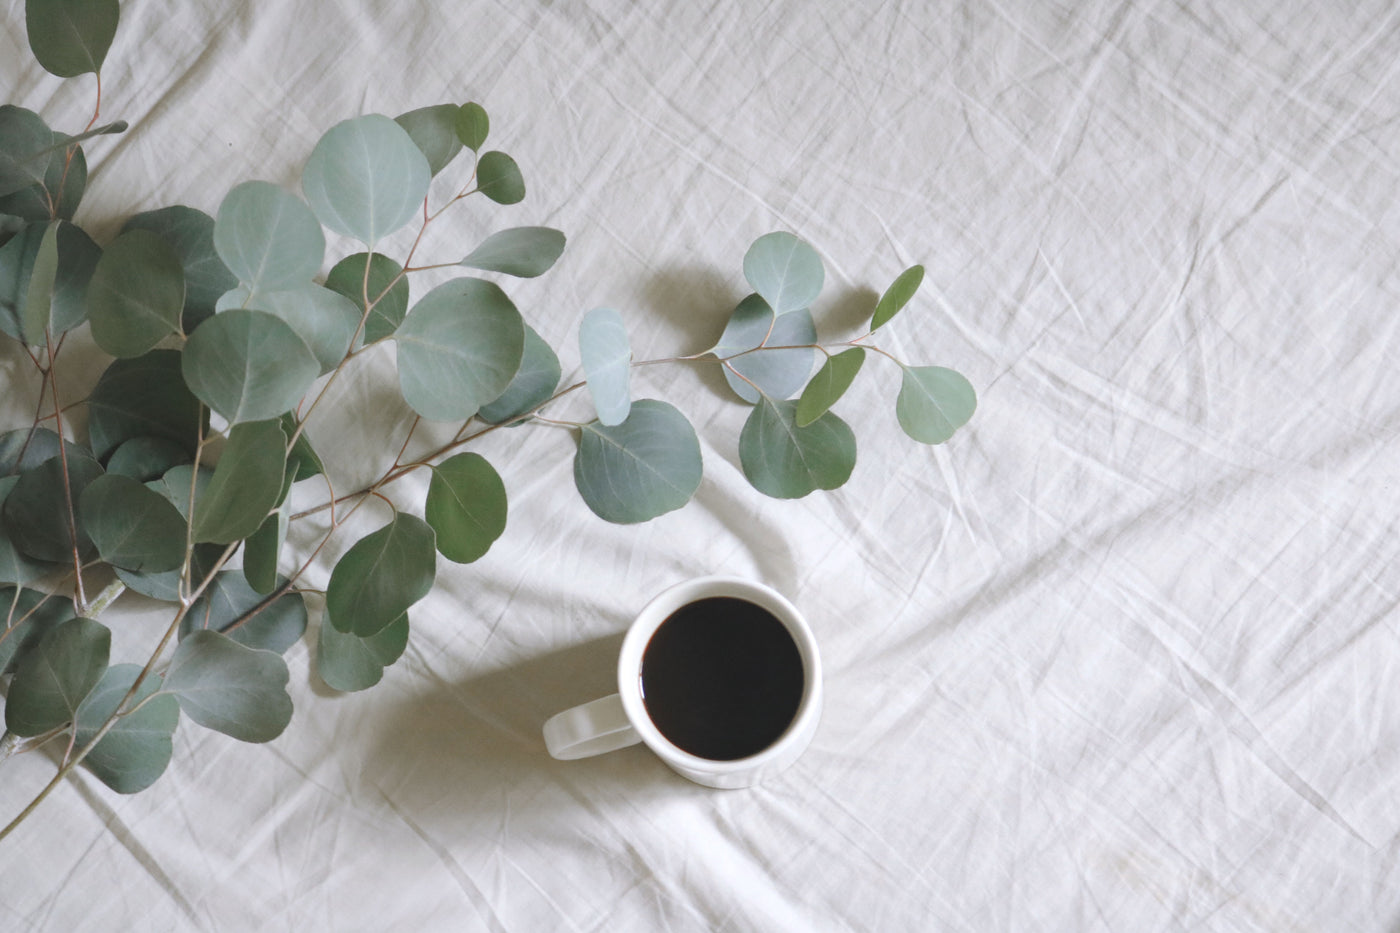 Eucalyptus Oil: Pain Relief from the Plant Kingdom